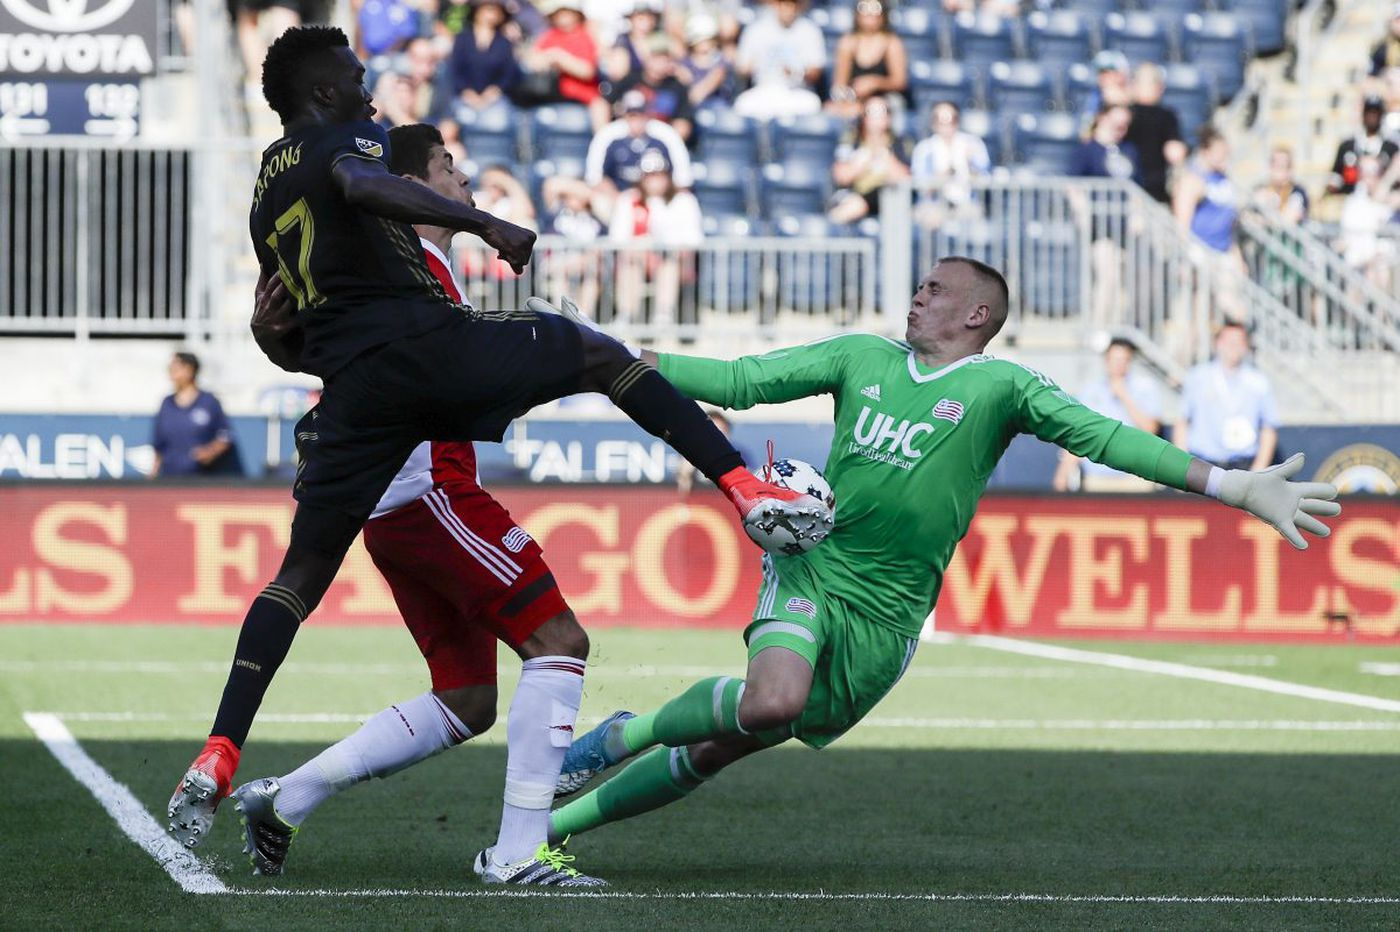 Union's C.J. Sapong gets contract extension after 16-goal season and solid 2018 debut